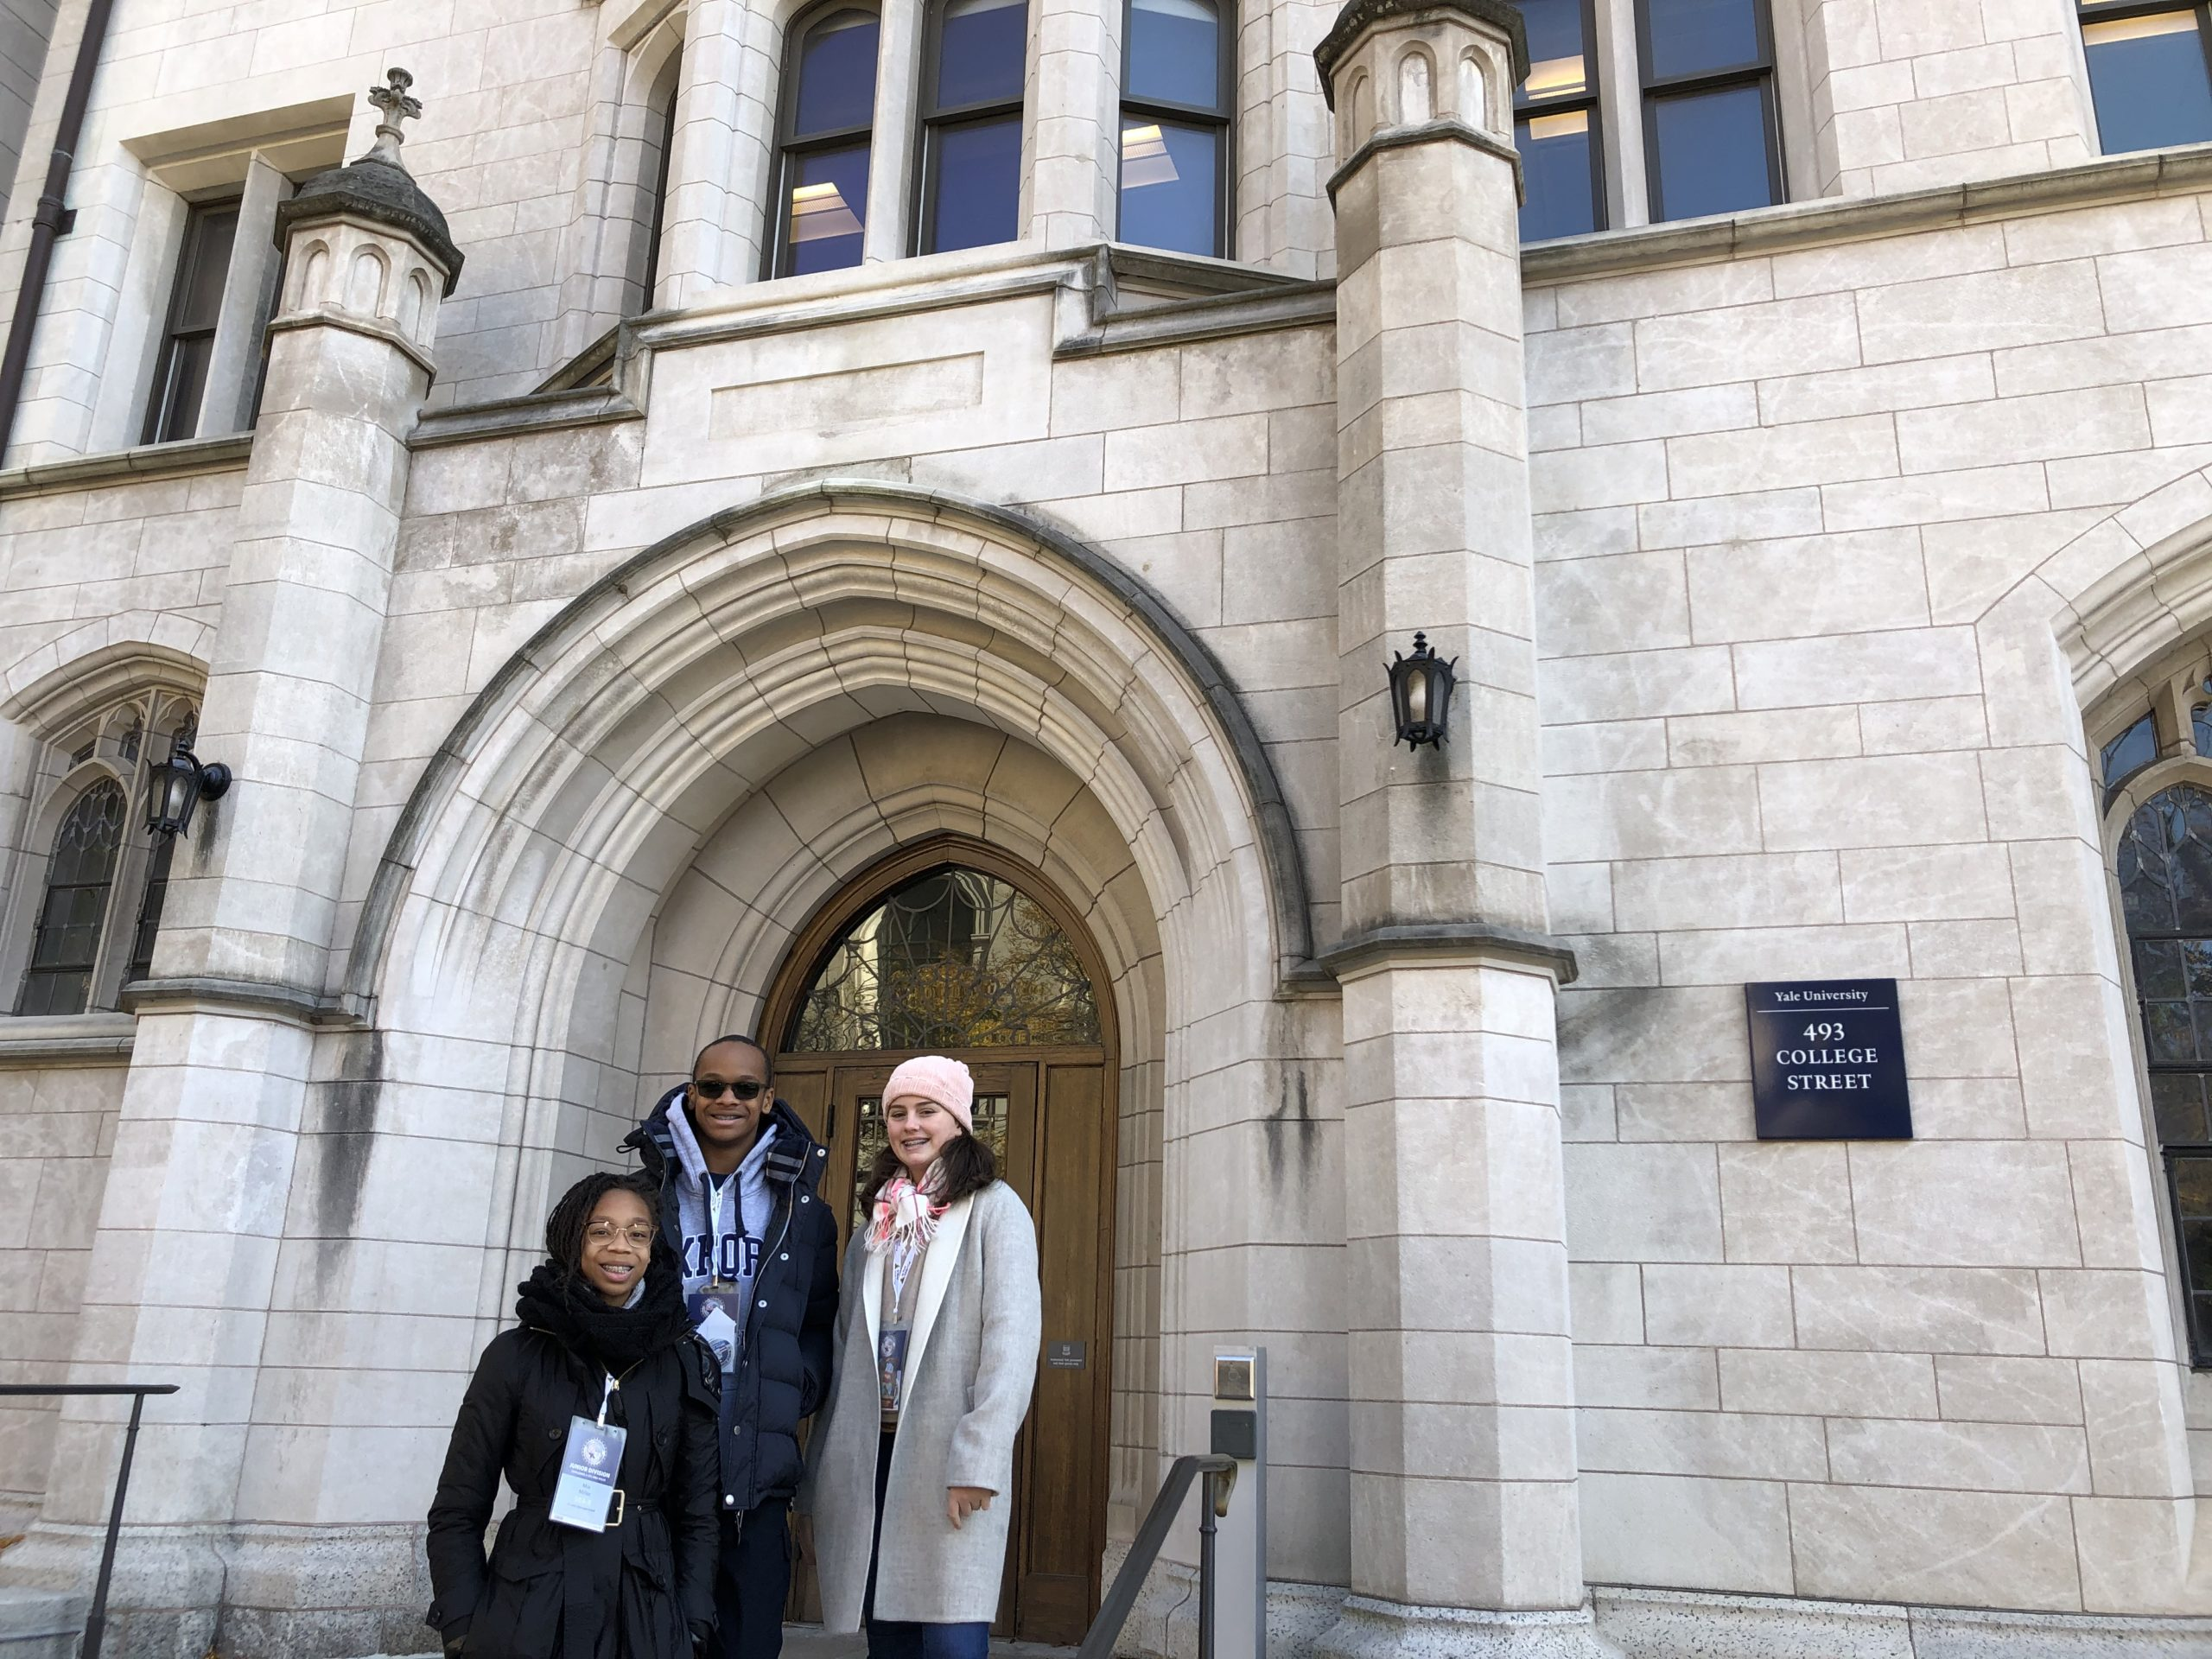 Eighth Grade students Mia Miller, Irene Sheerin, and Marcus Miller at Yale University